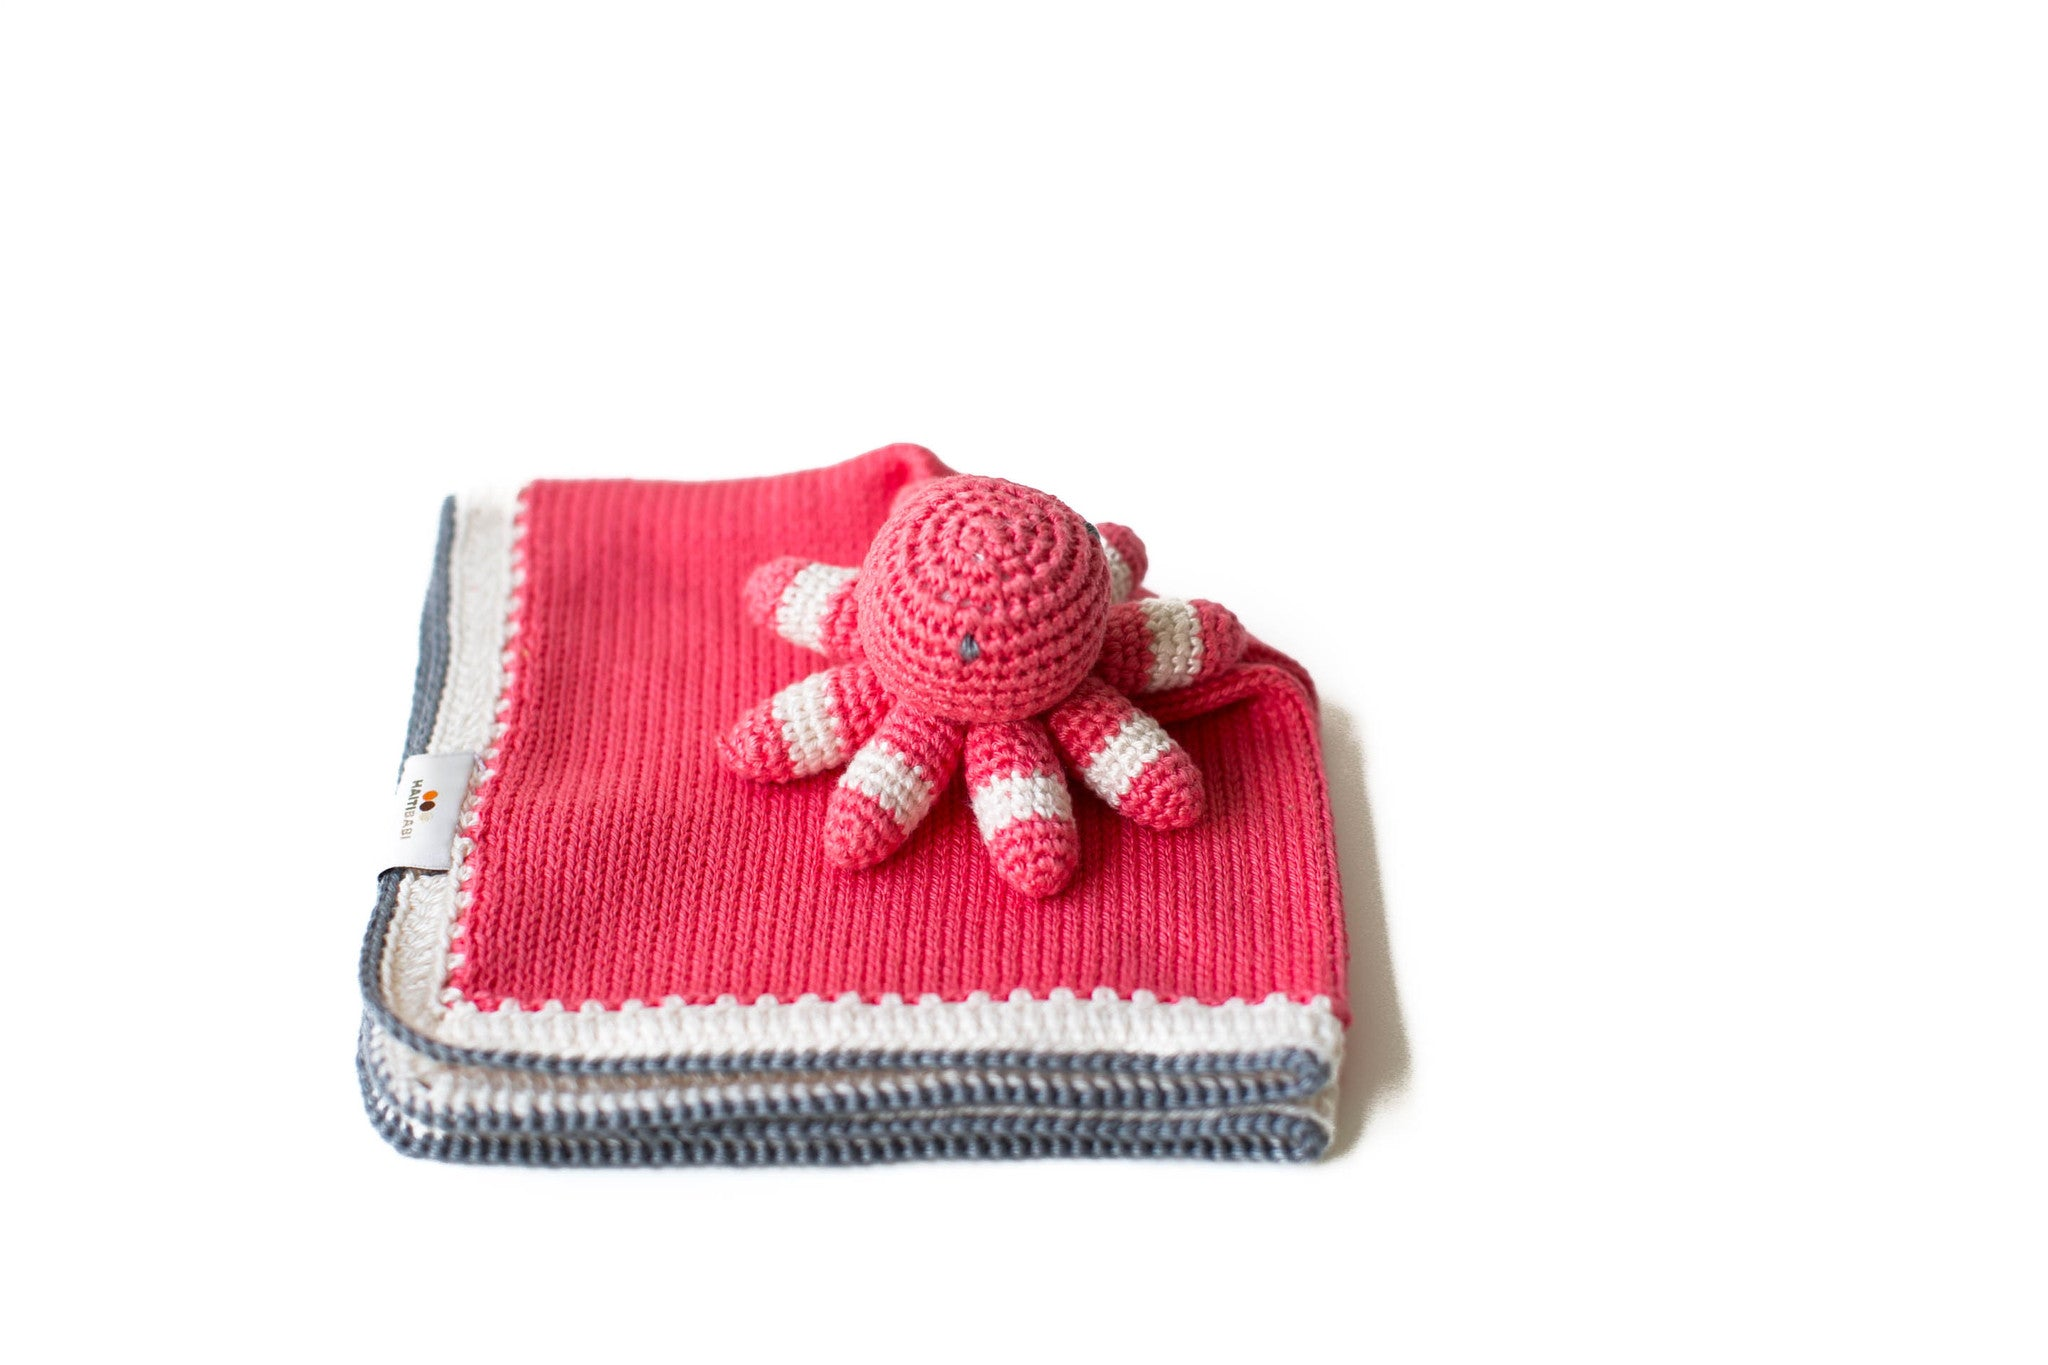 Octopus lovey in guava flat